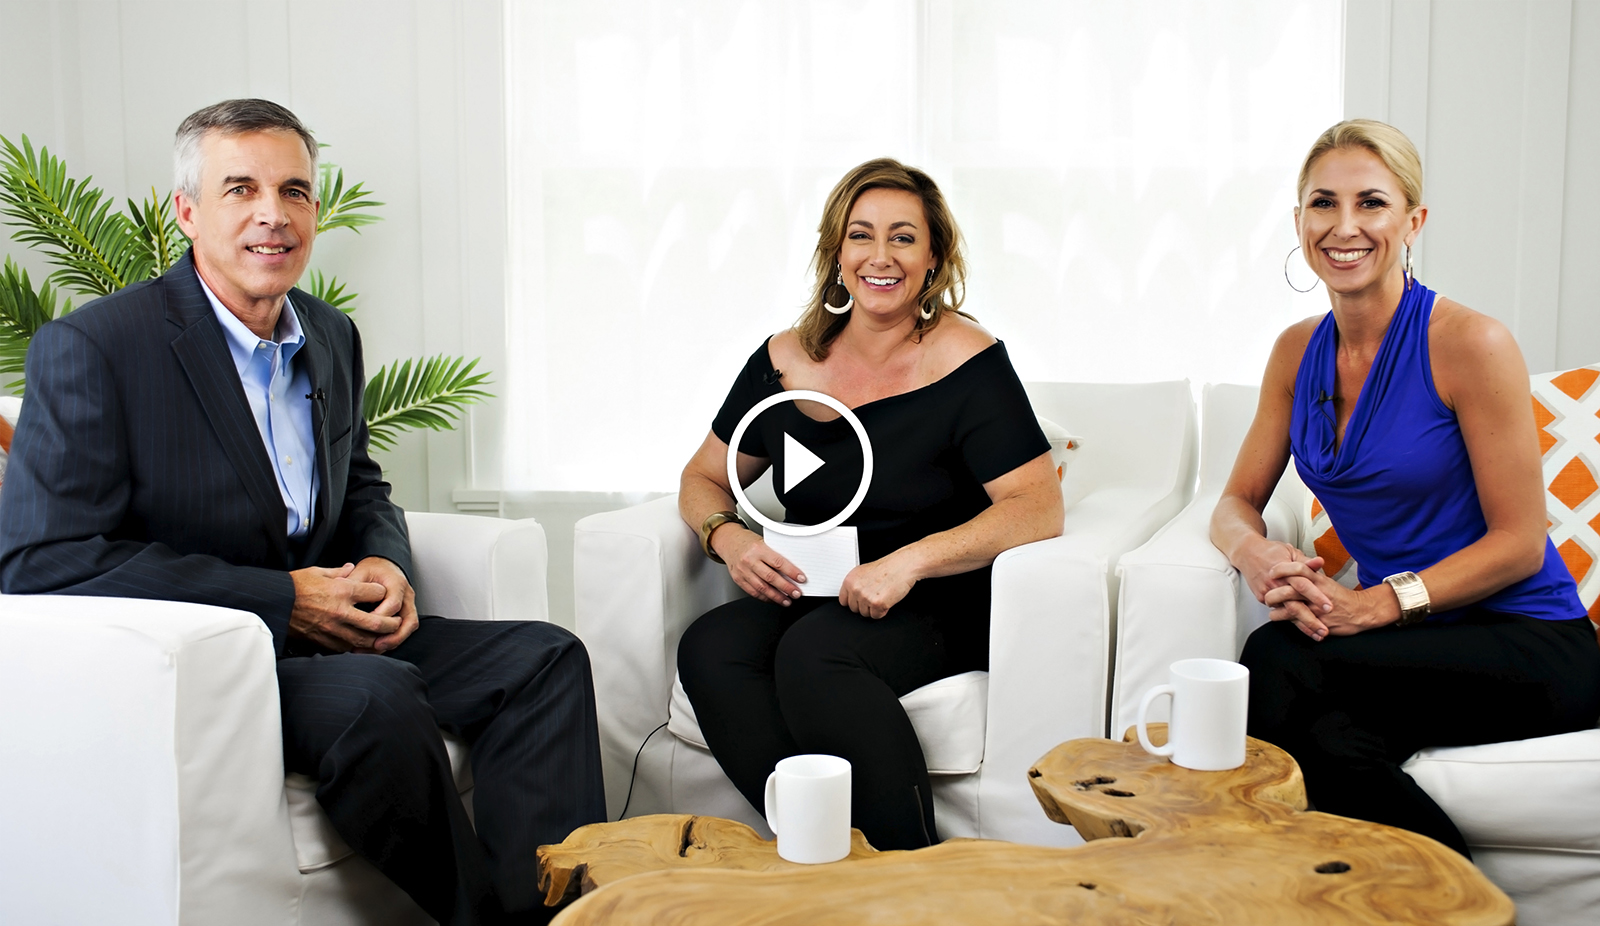 Terry Hastings discusses how the divorce process can impact getting a mortgage.